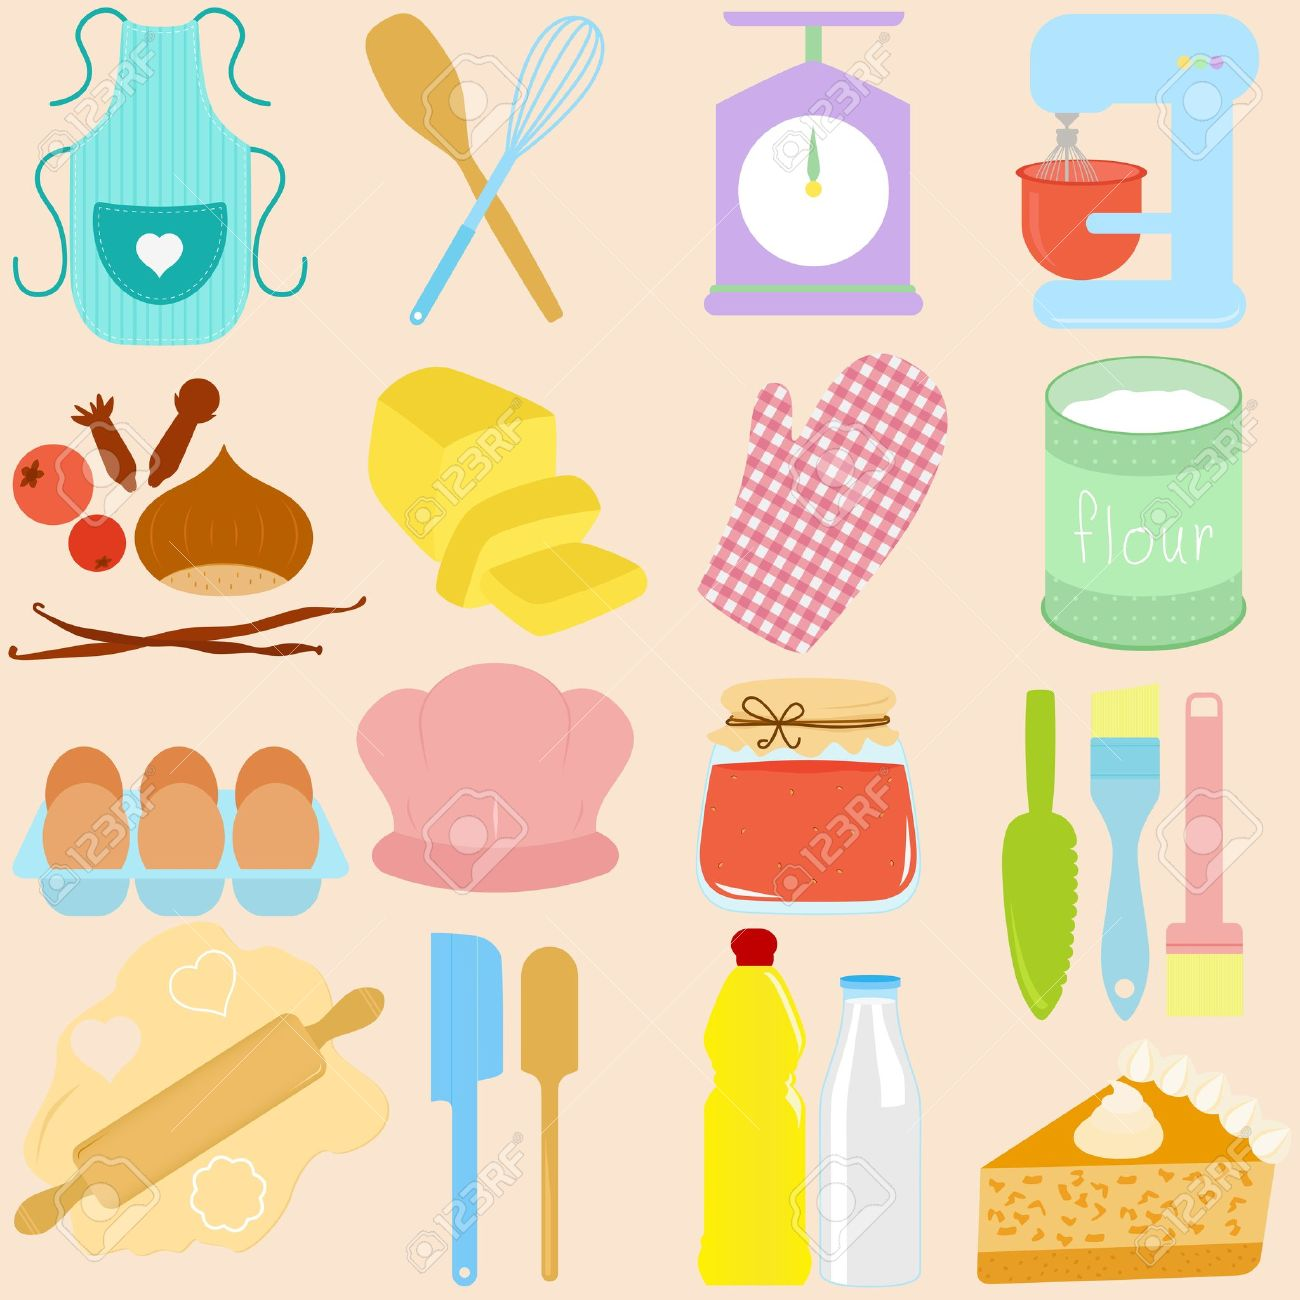 Baking Tools Vector Collection Of Cooking Baking Tools In Pastel Royalty Free